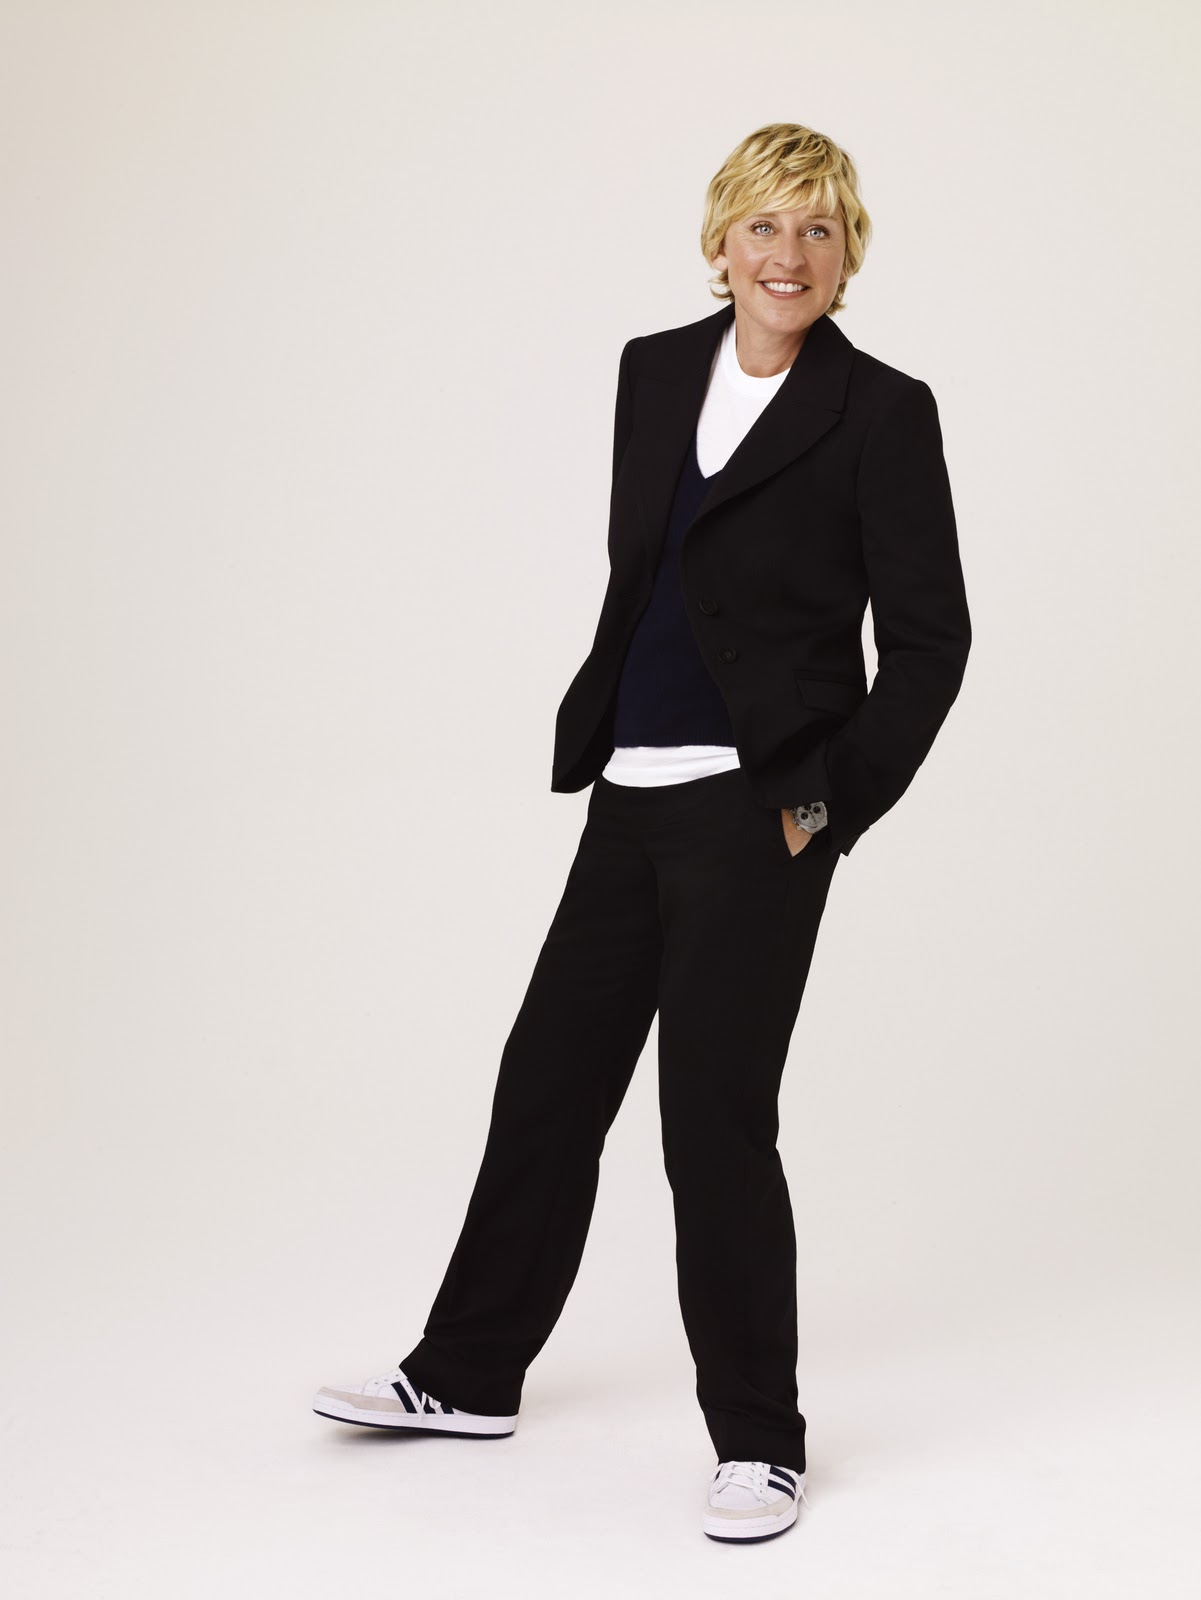 ellen degeneres and leadership An inspiring teacher shares ellen degeneres life changing lessons and a firsthand account of what it's like to be on the ellen show.